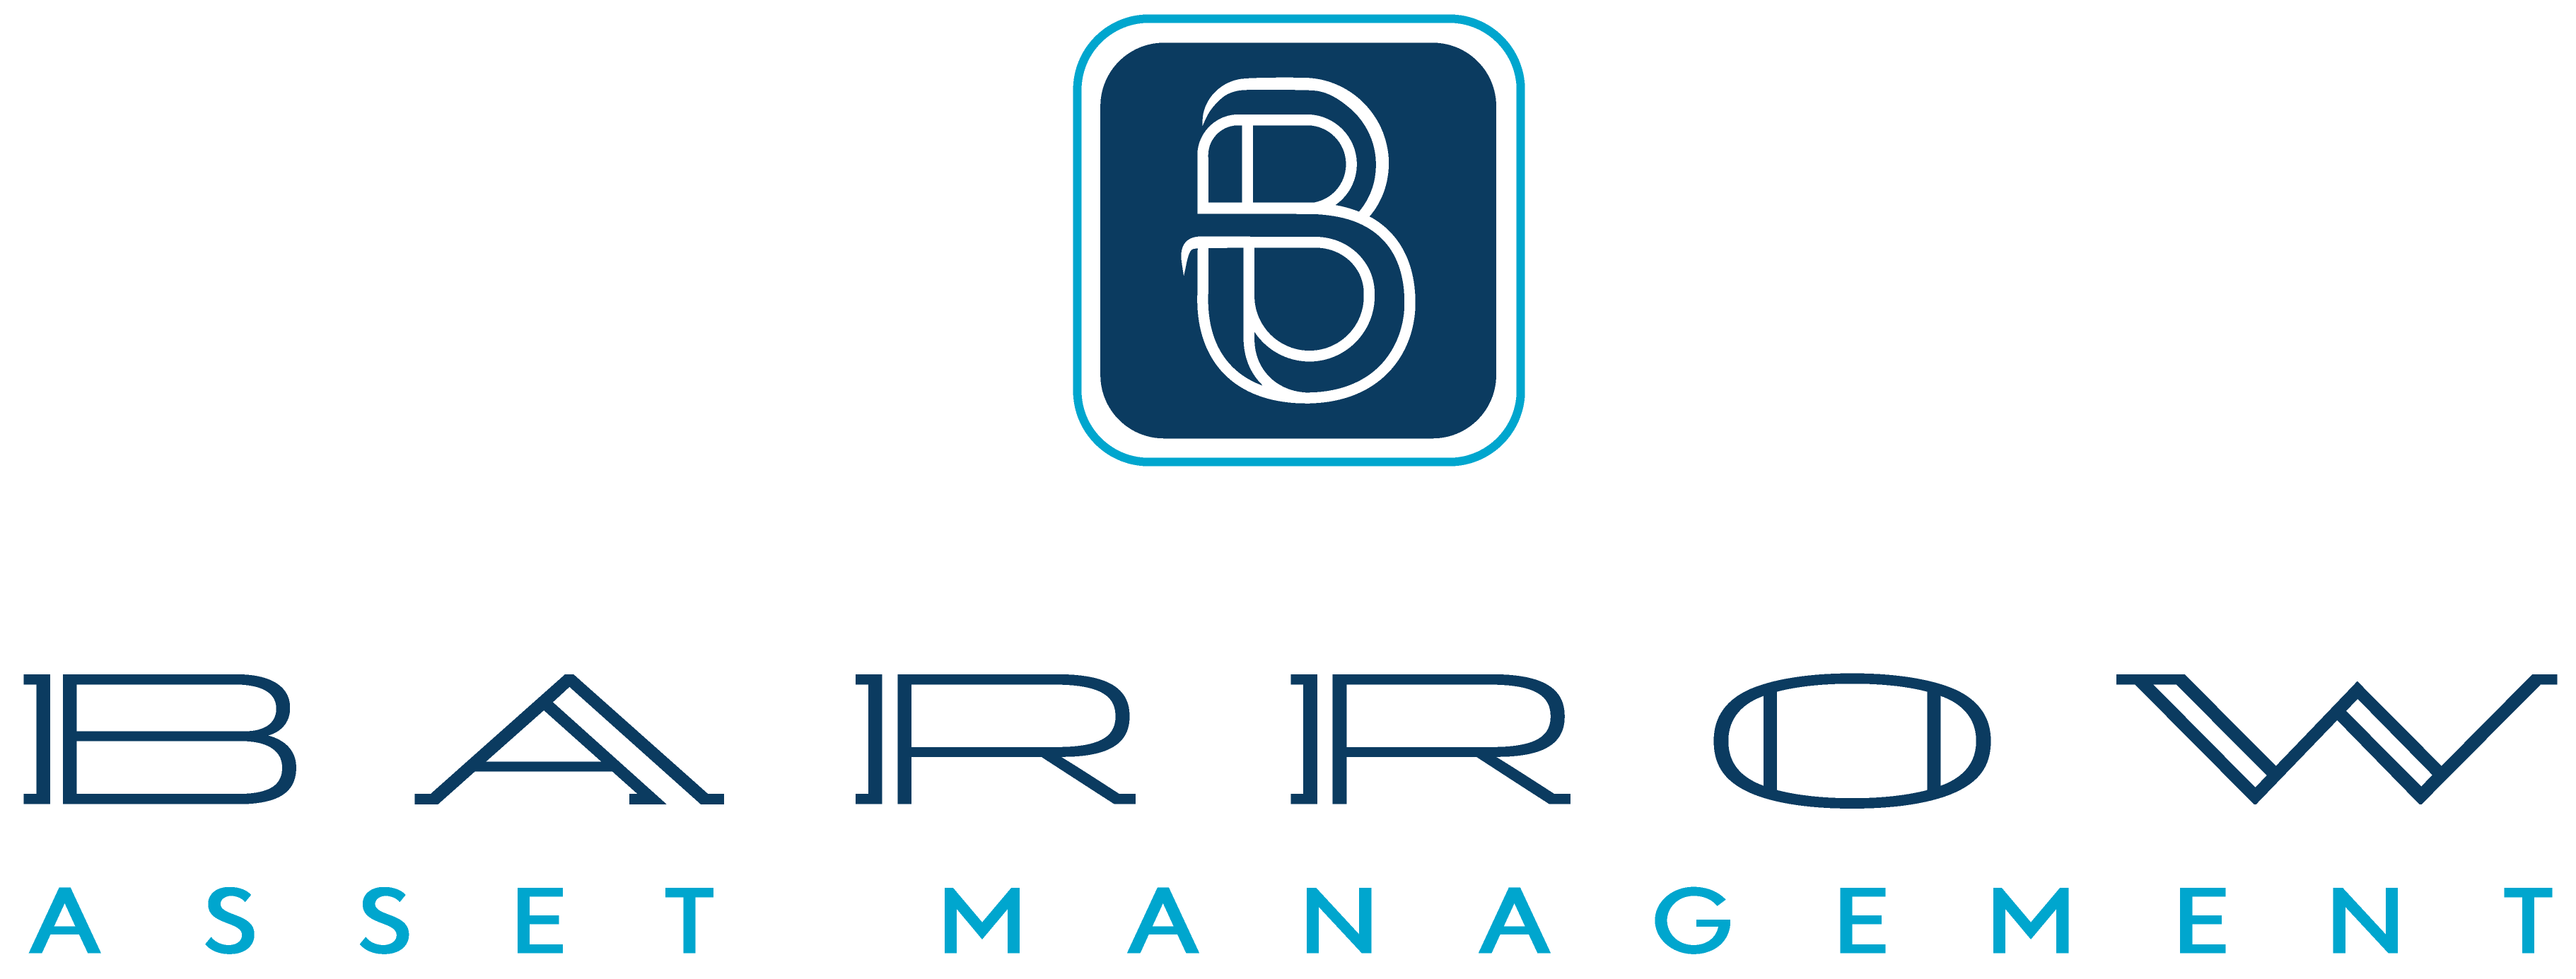 Barrow Asset Management